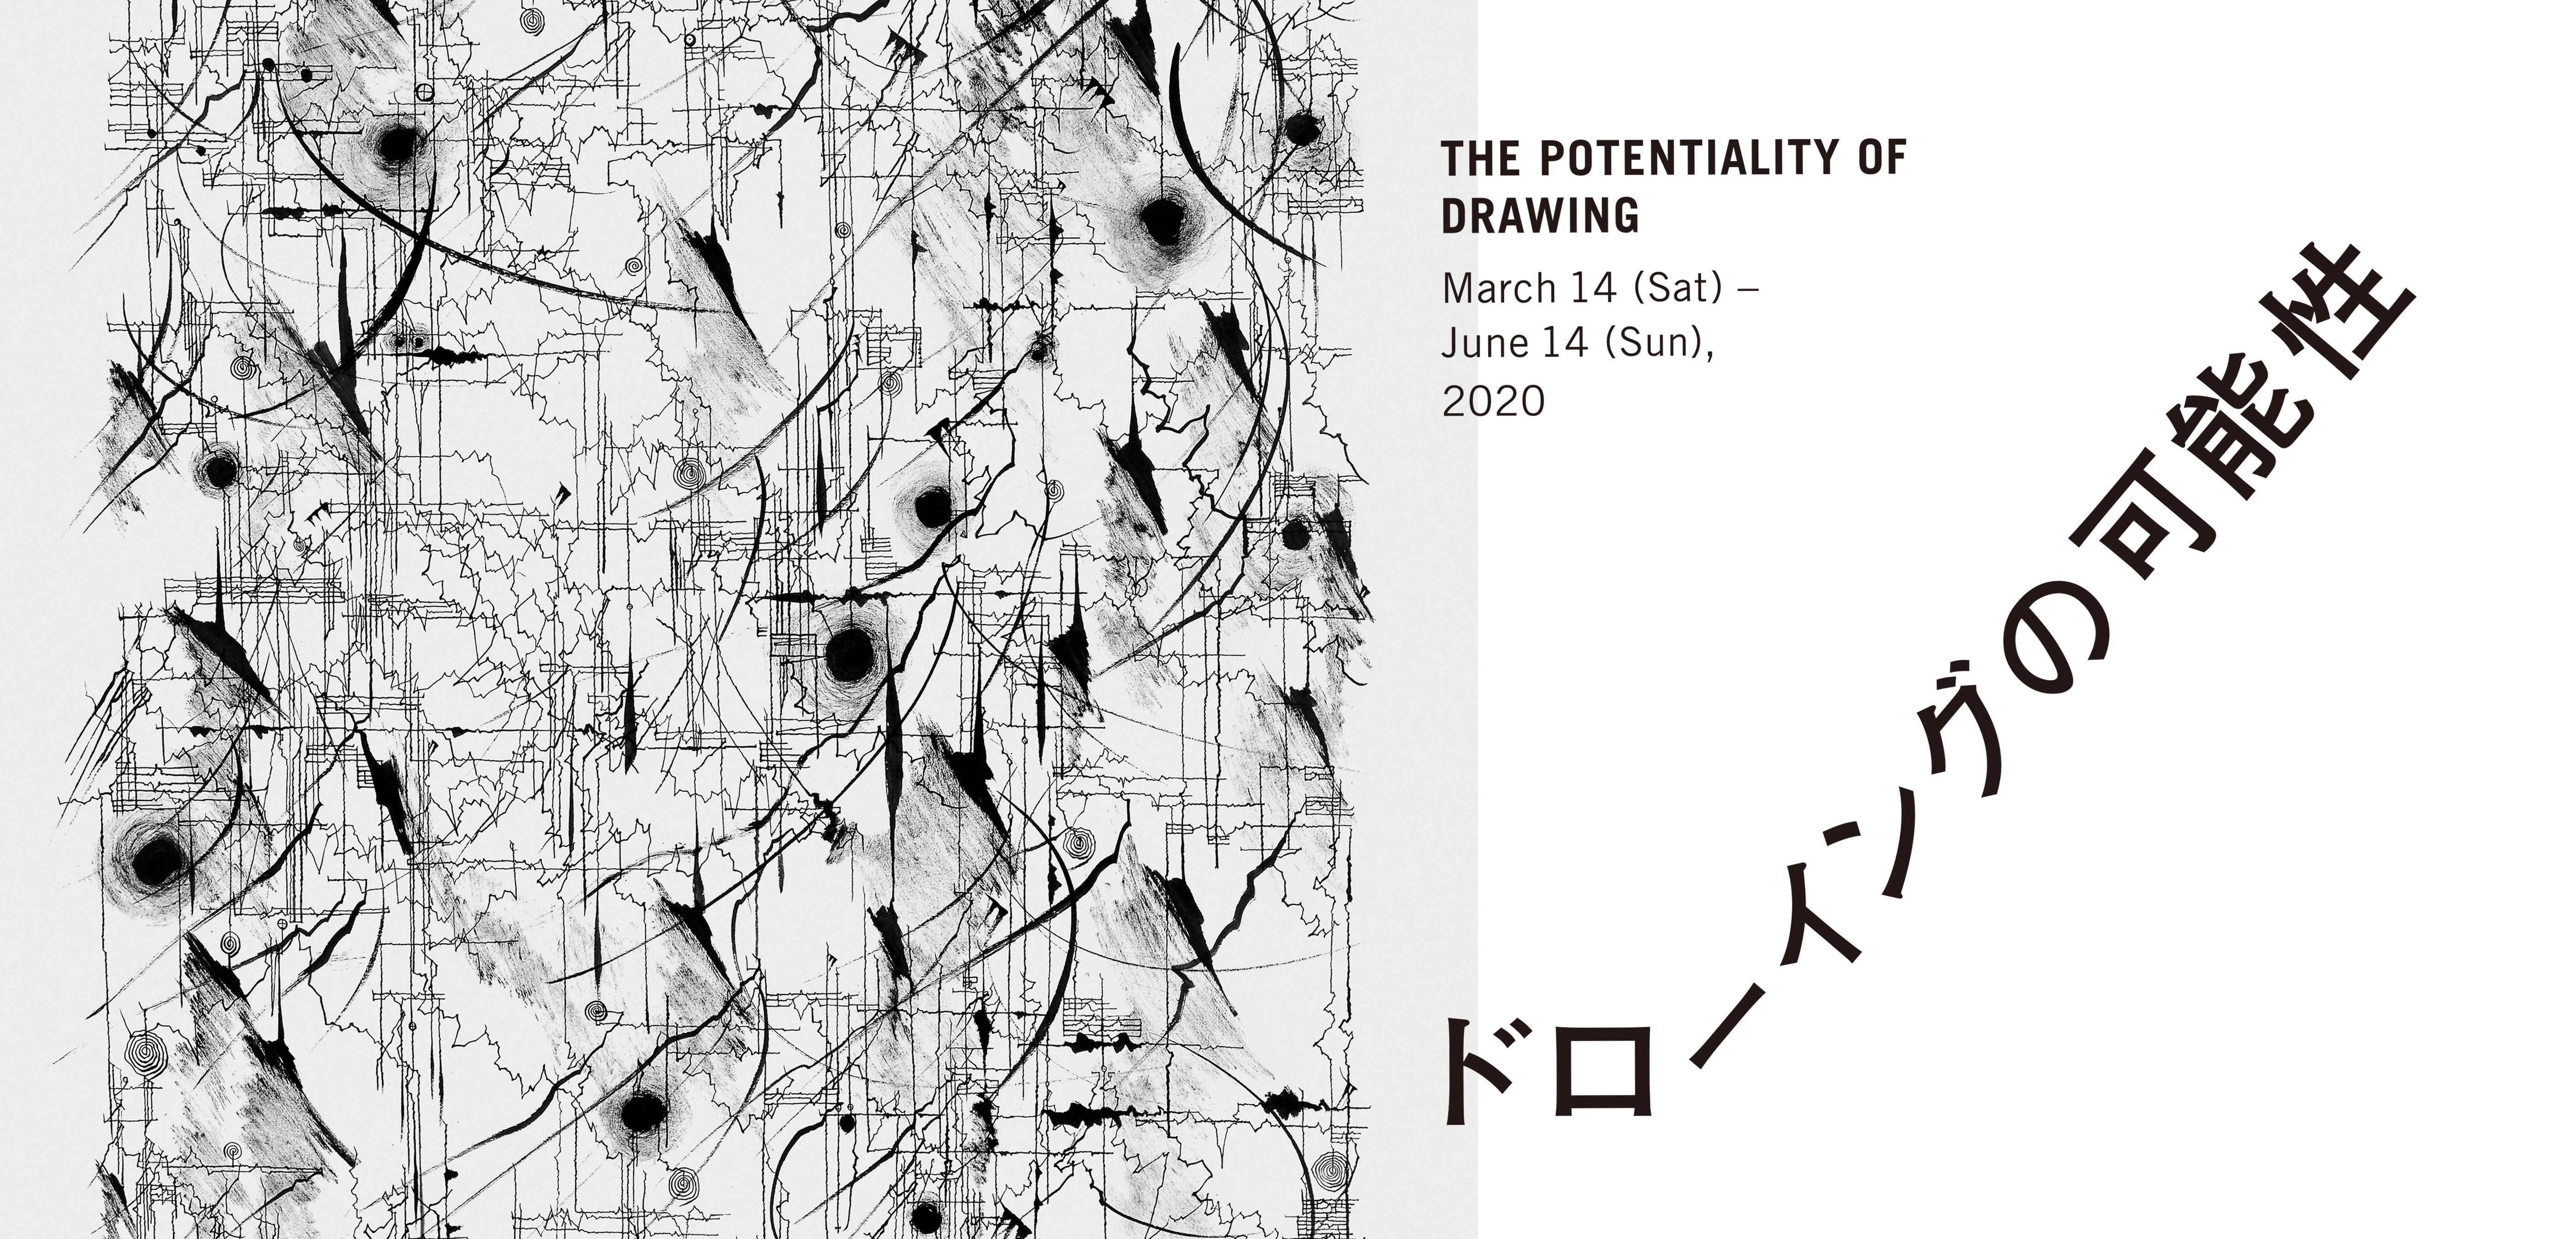 The Potentiality of Drawing